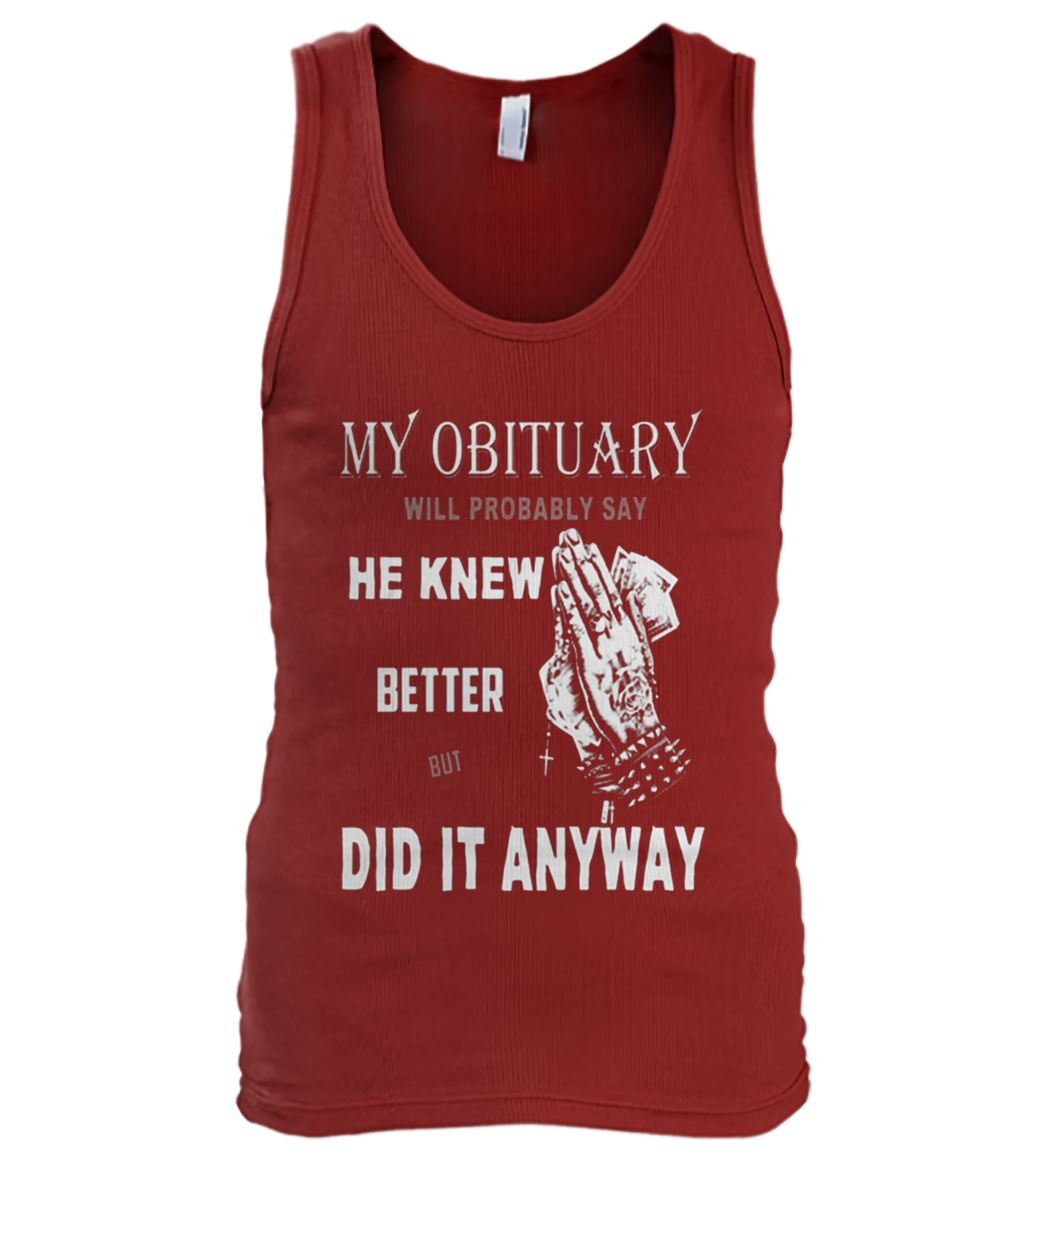 My obituary will be probably say he knew better but did it anyway men's tank top